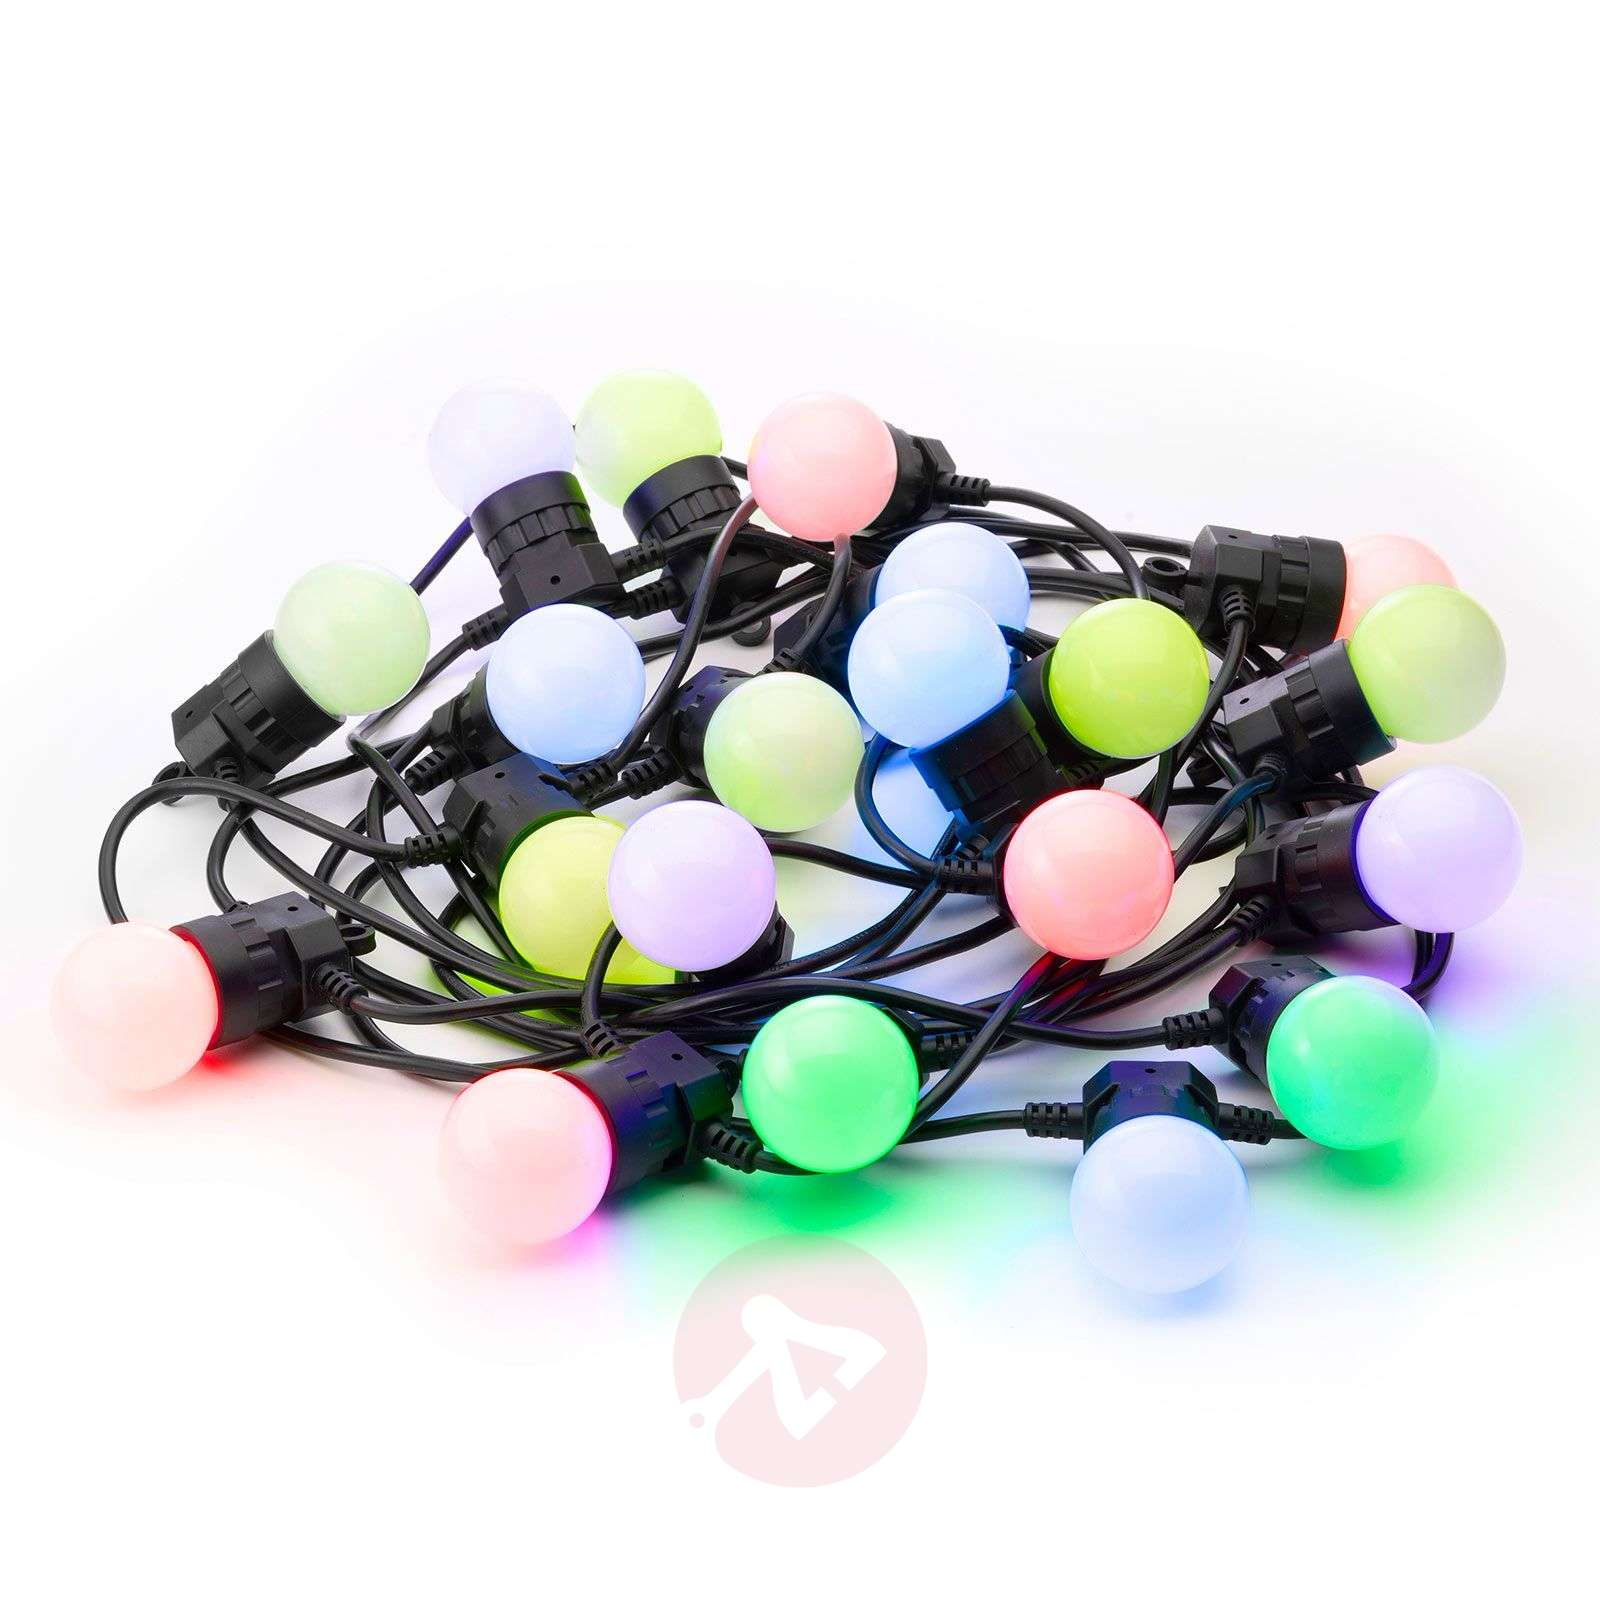 LED-party-lichtketting Twinkly Festoon uitbreiding-6102026-01